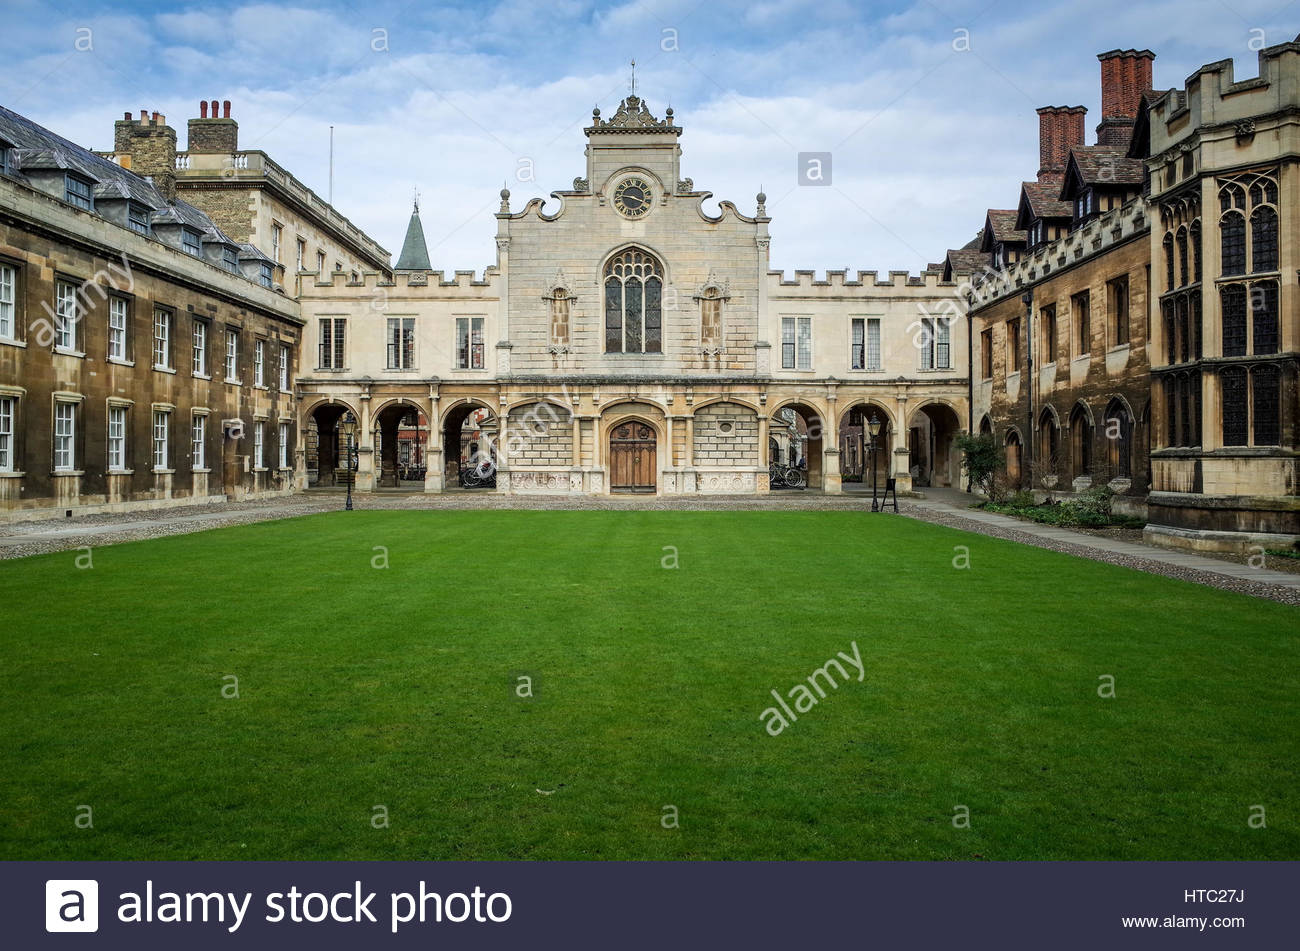 The Courtyard and Chapel at Peterhouse college, part of the University of Cambridge. Peterhouse is the oldest Cambridge - Stock Image